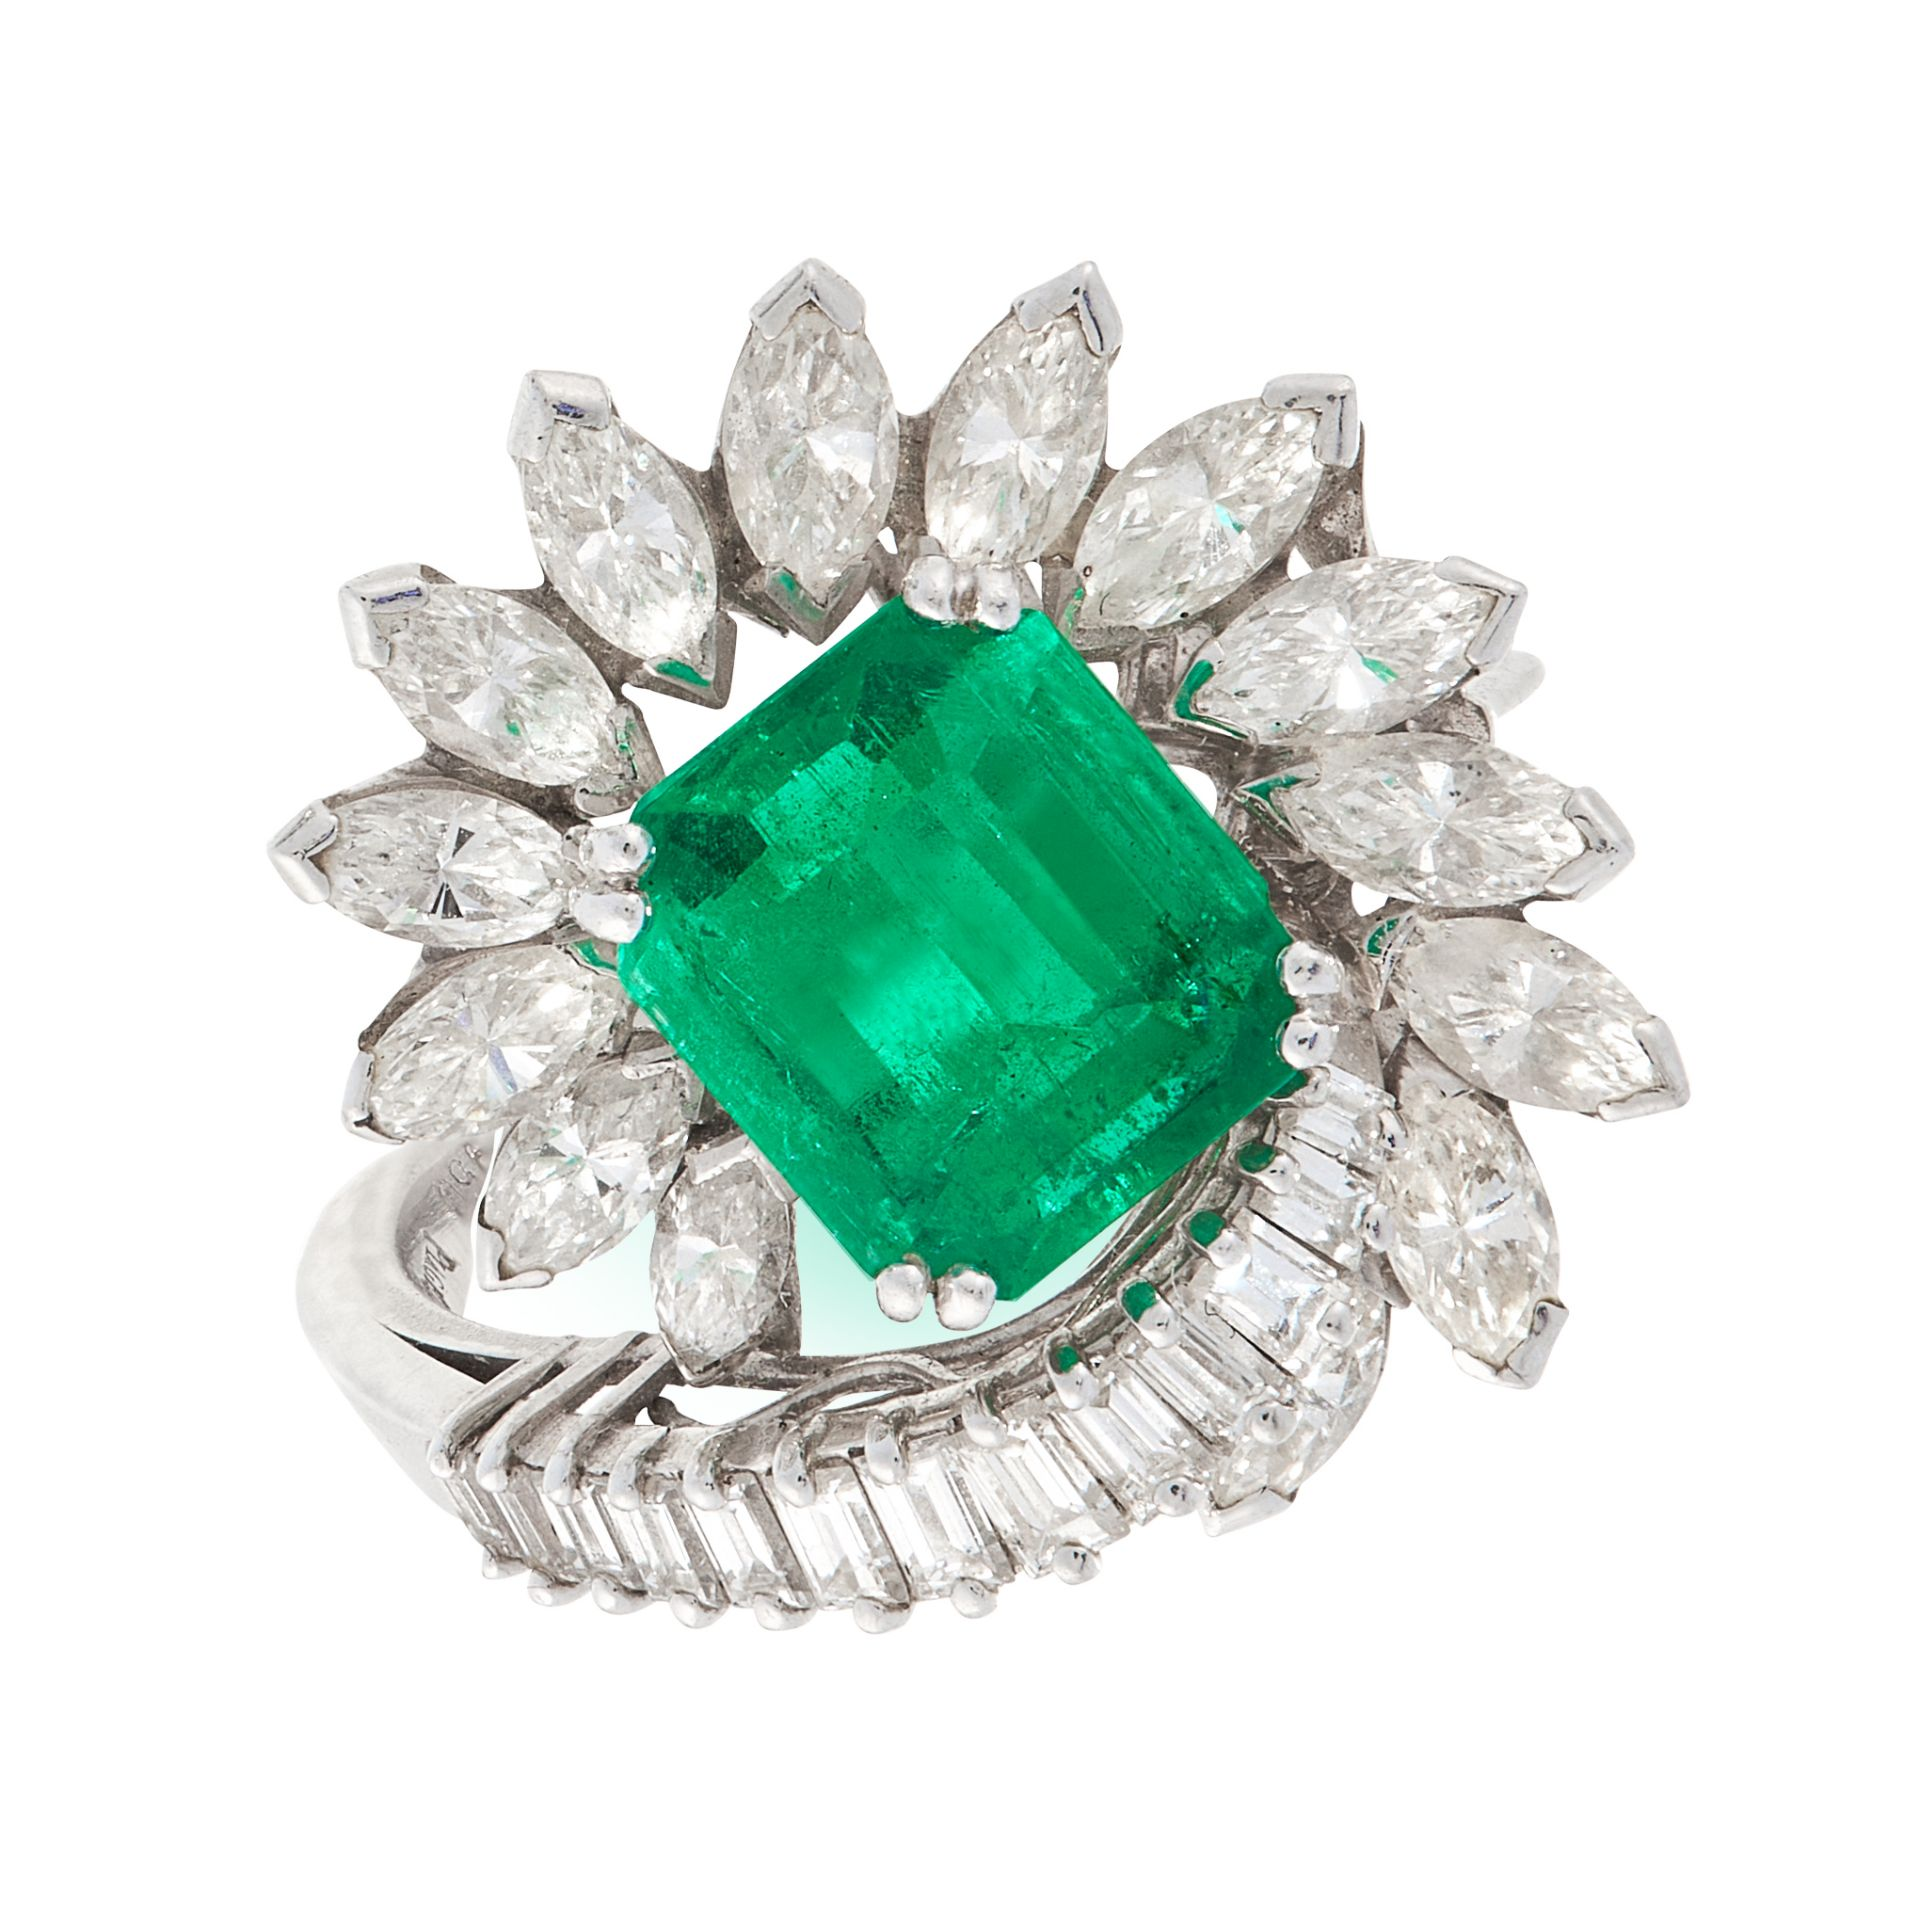 AN EMERALD AND DIAMOND DRESS RING, PIAGET in platinum, set with an emerald cut emerald of 1.64